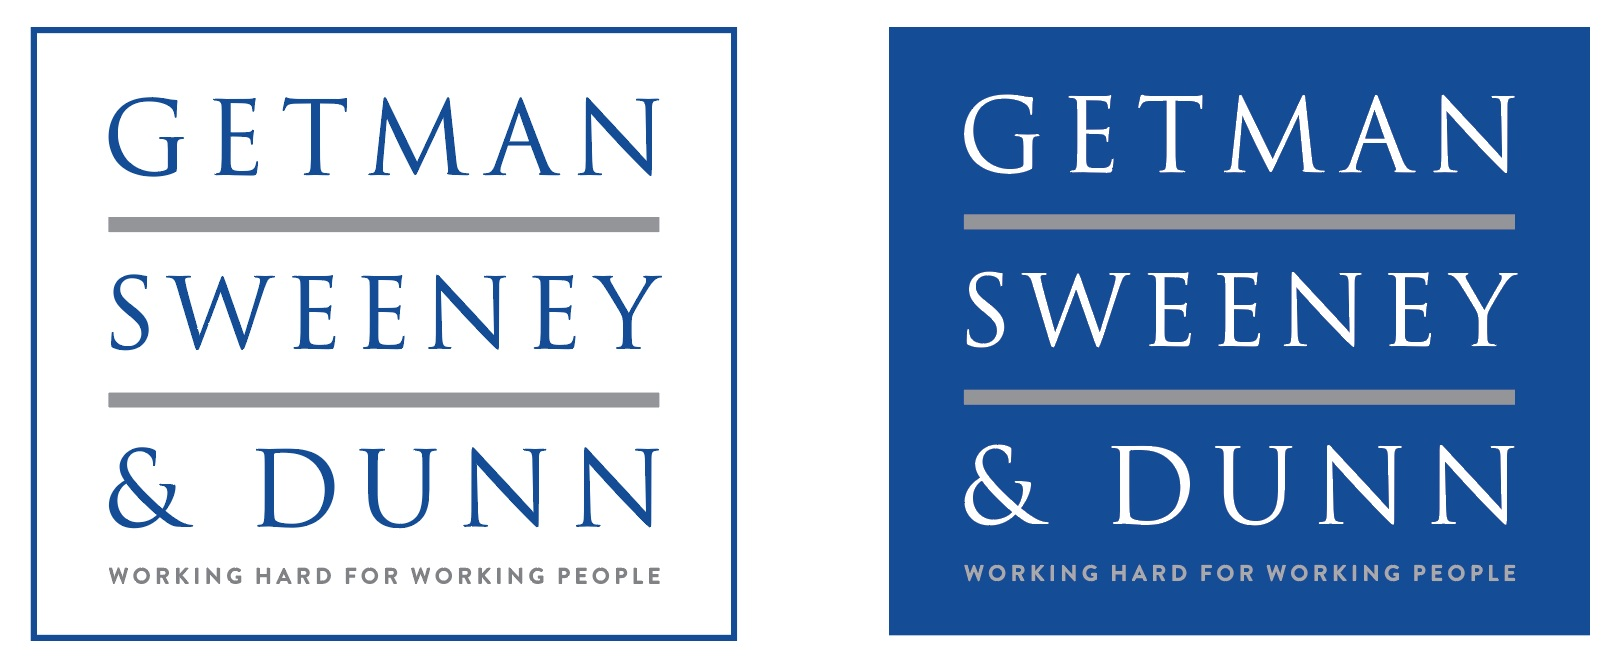 Getman+Sweeney+%26+Dunn+Lawfirm+Lawyers+Kingston+NY+Logo+Design+Hudson+Valley+Graphic+Design+Carla+Rozman.jpg